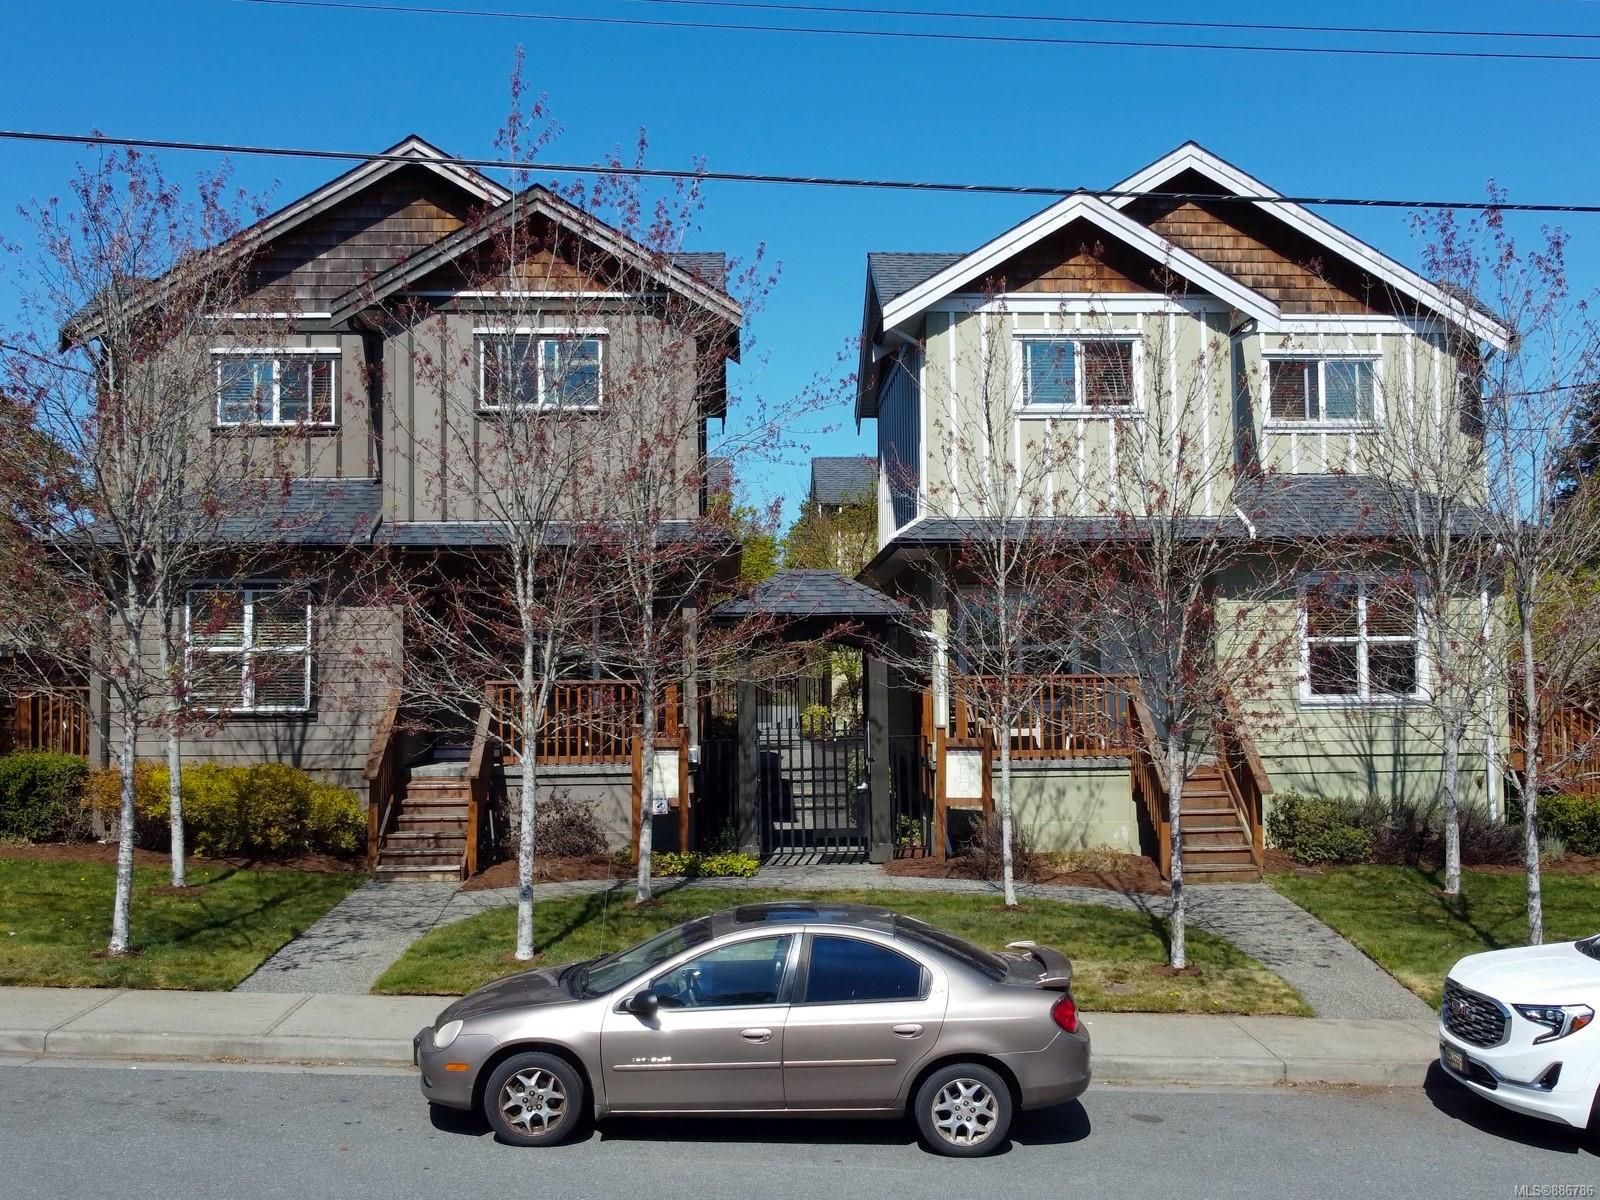 Main Photo: 102 582 Rosehill St in : Na Central Nanaimo Row/Townhouse for sale (Nanaimo)  : MLS®# 886786